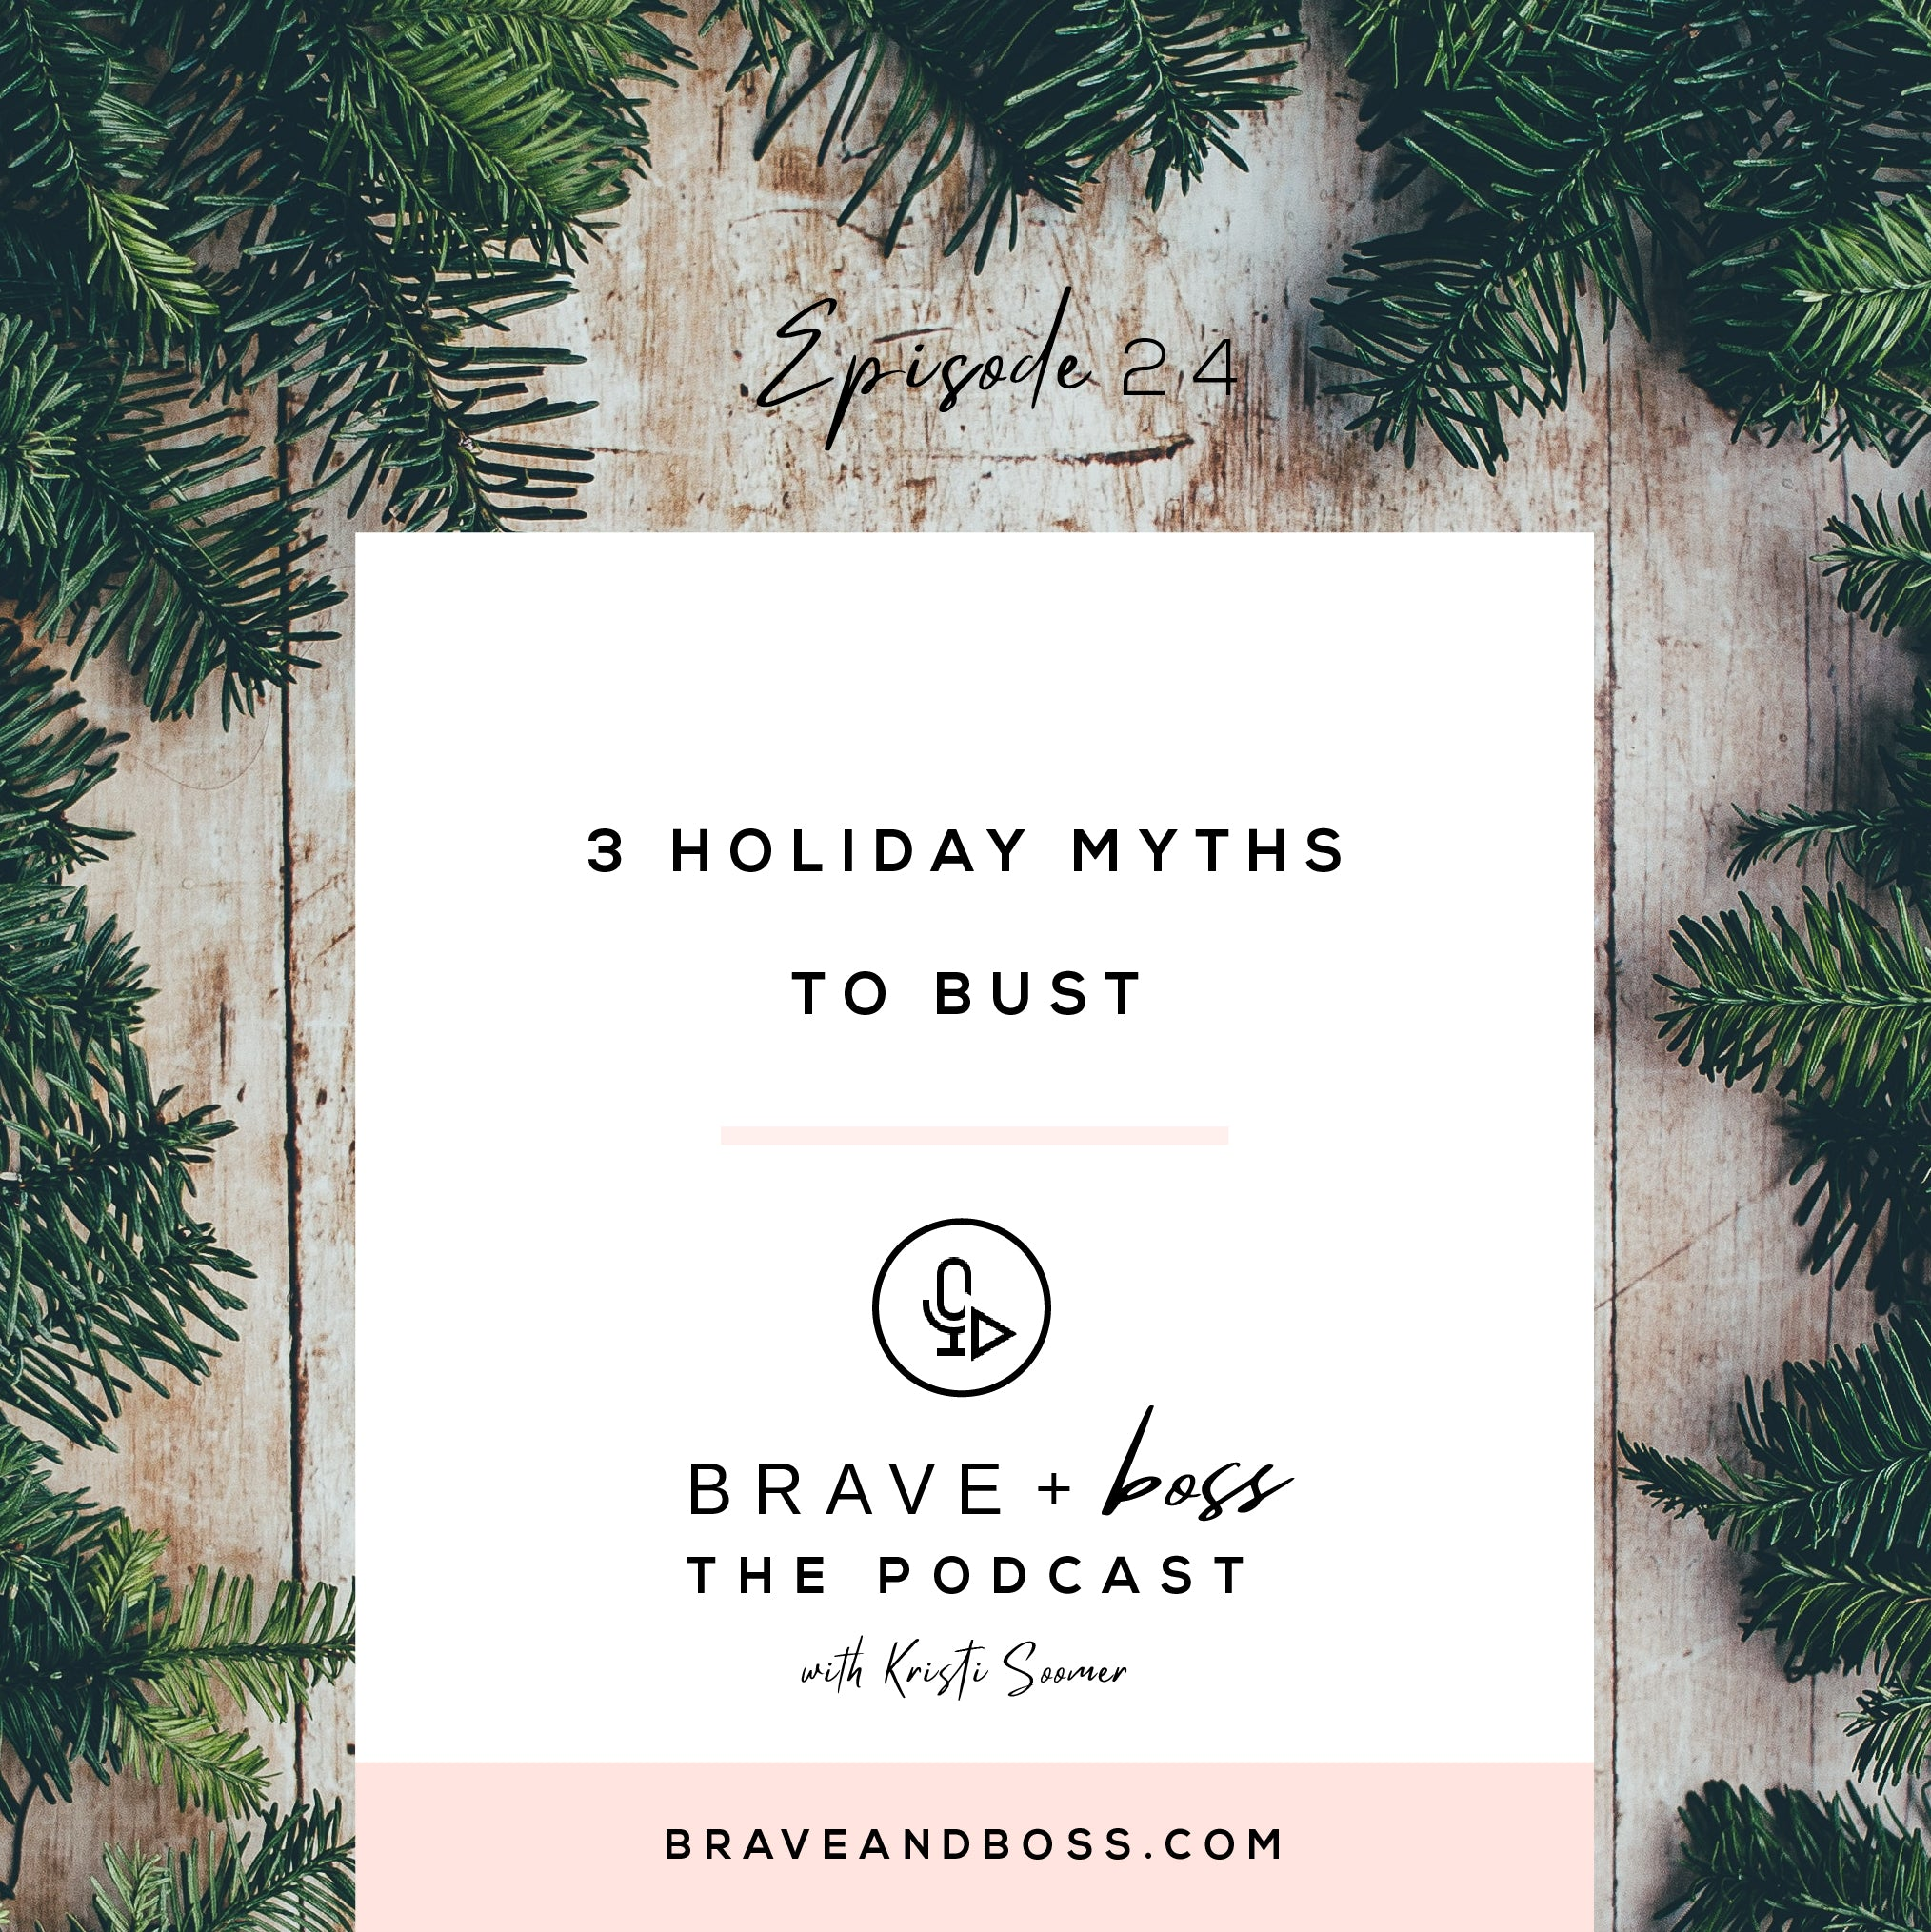 3 Holiday Myths to Bust